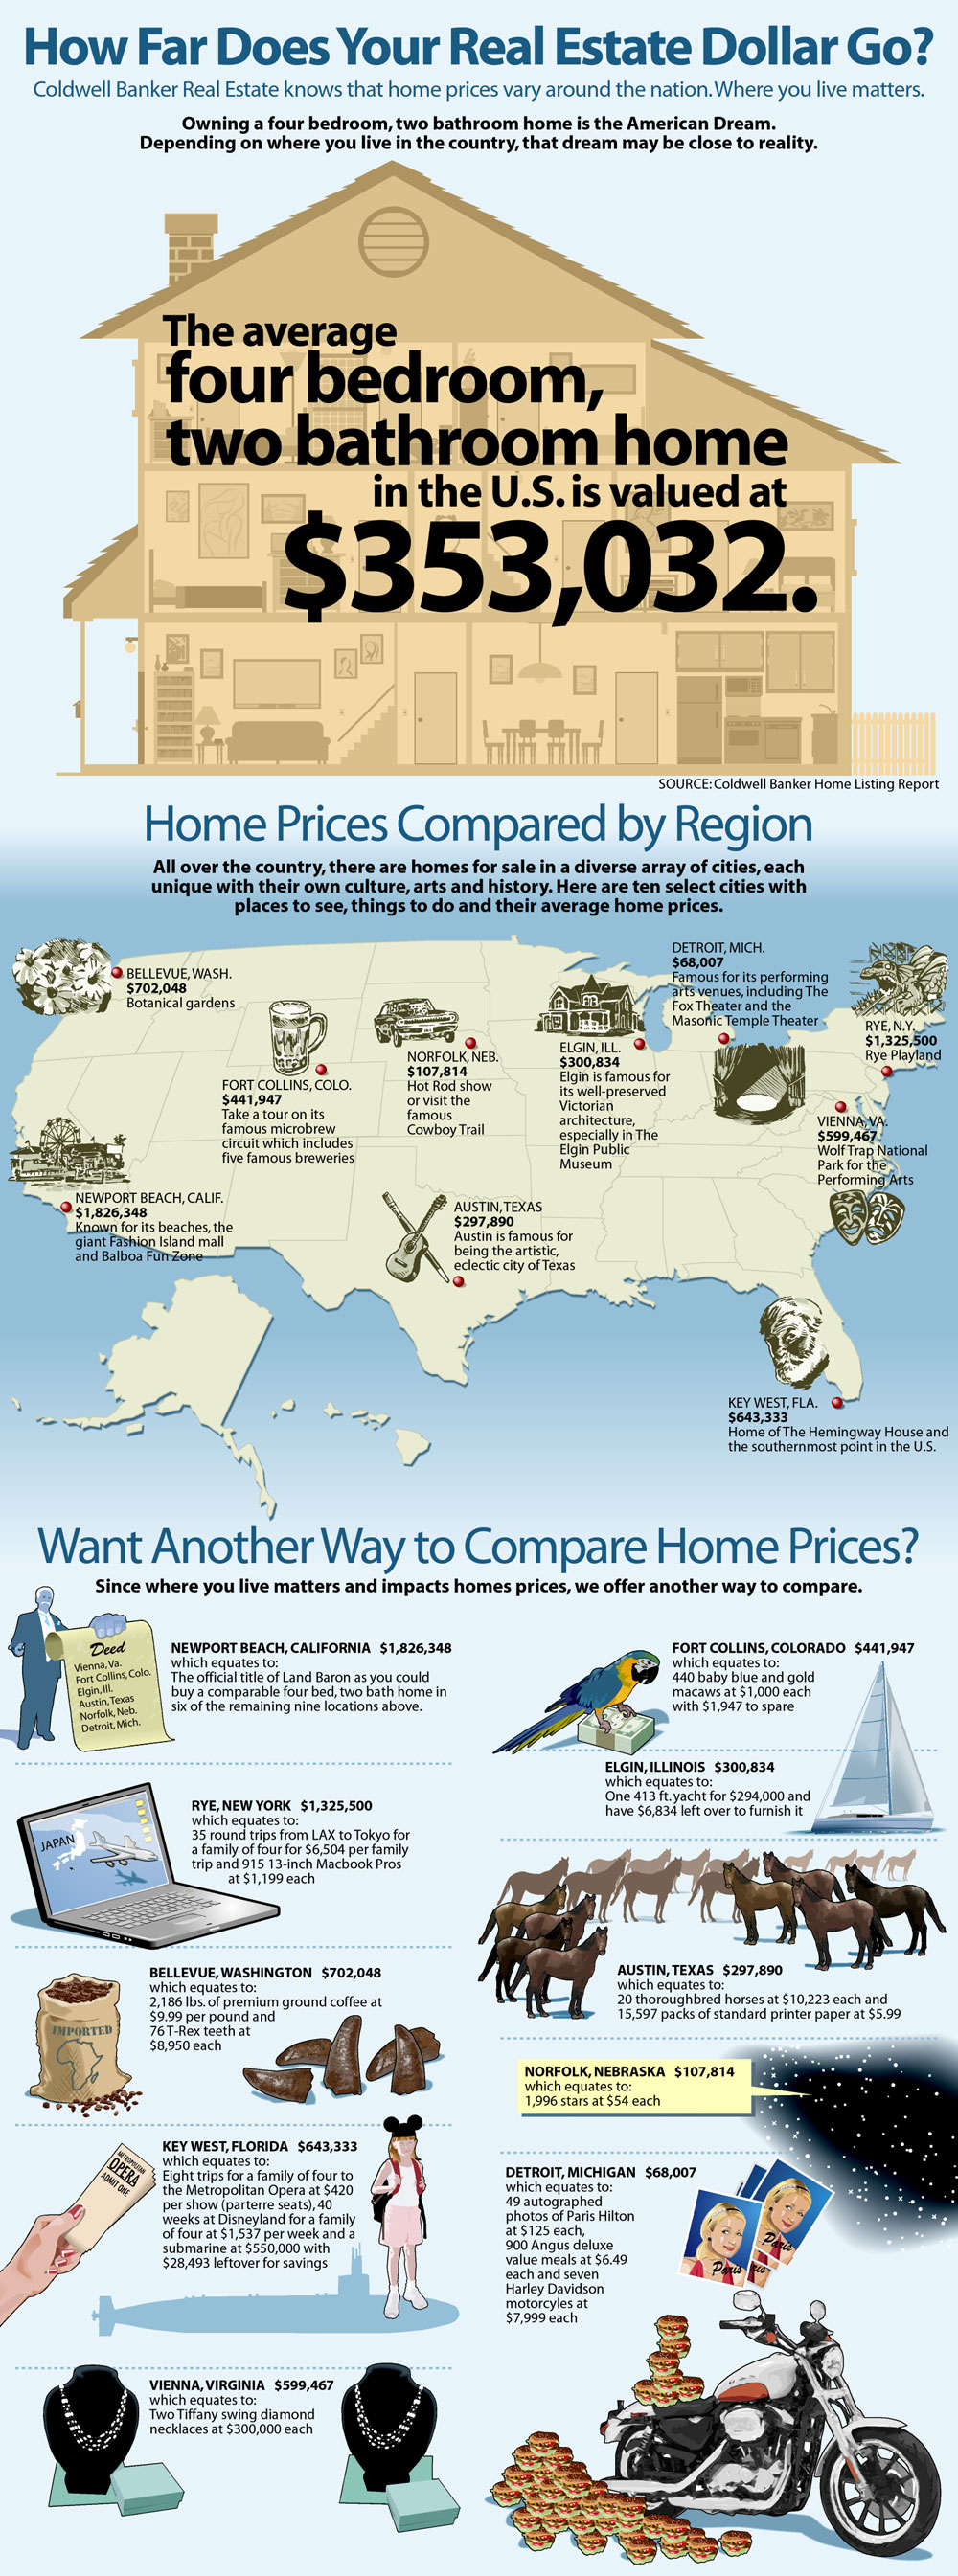 coldwell banker infographic1 Home Prices in the US Infographic